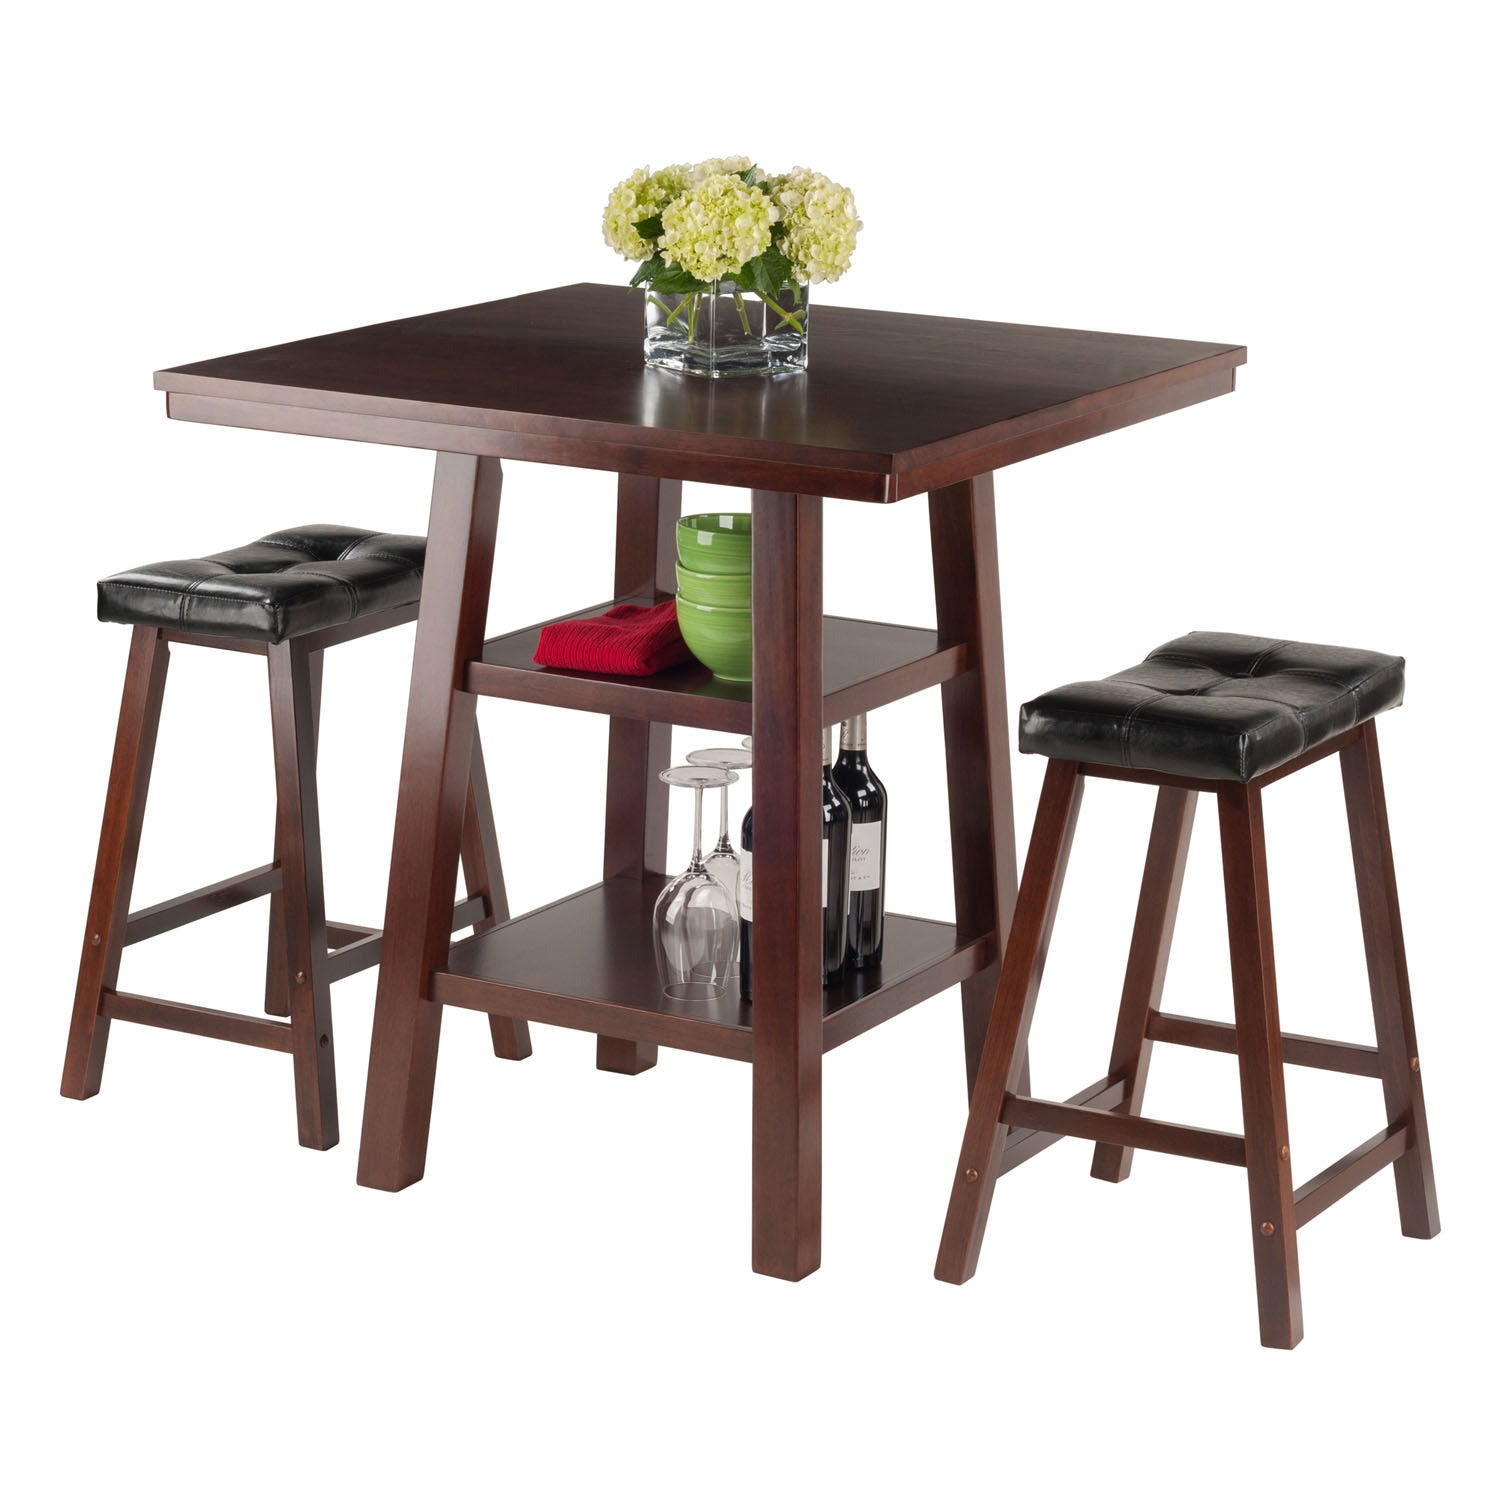 Shop Winsome Orlando 3 Piece Dining Table Set With 2 Saddle Seat Stools